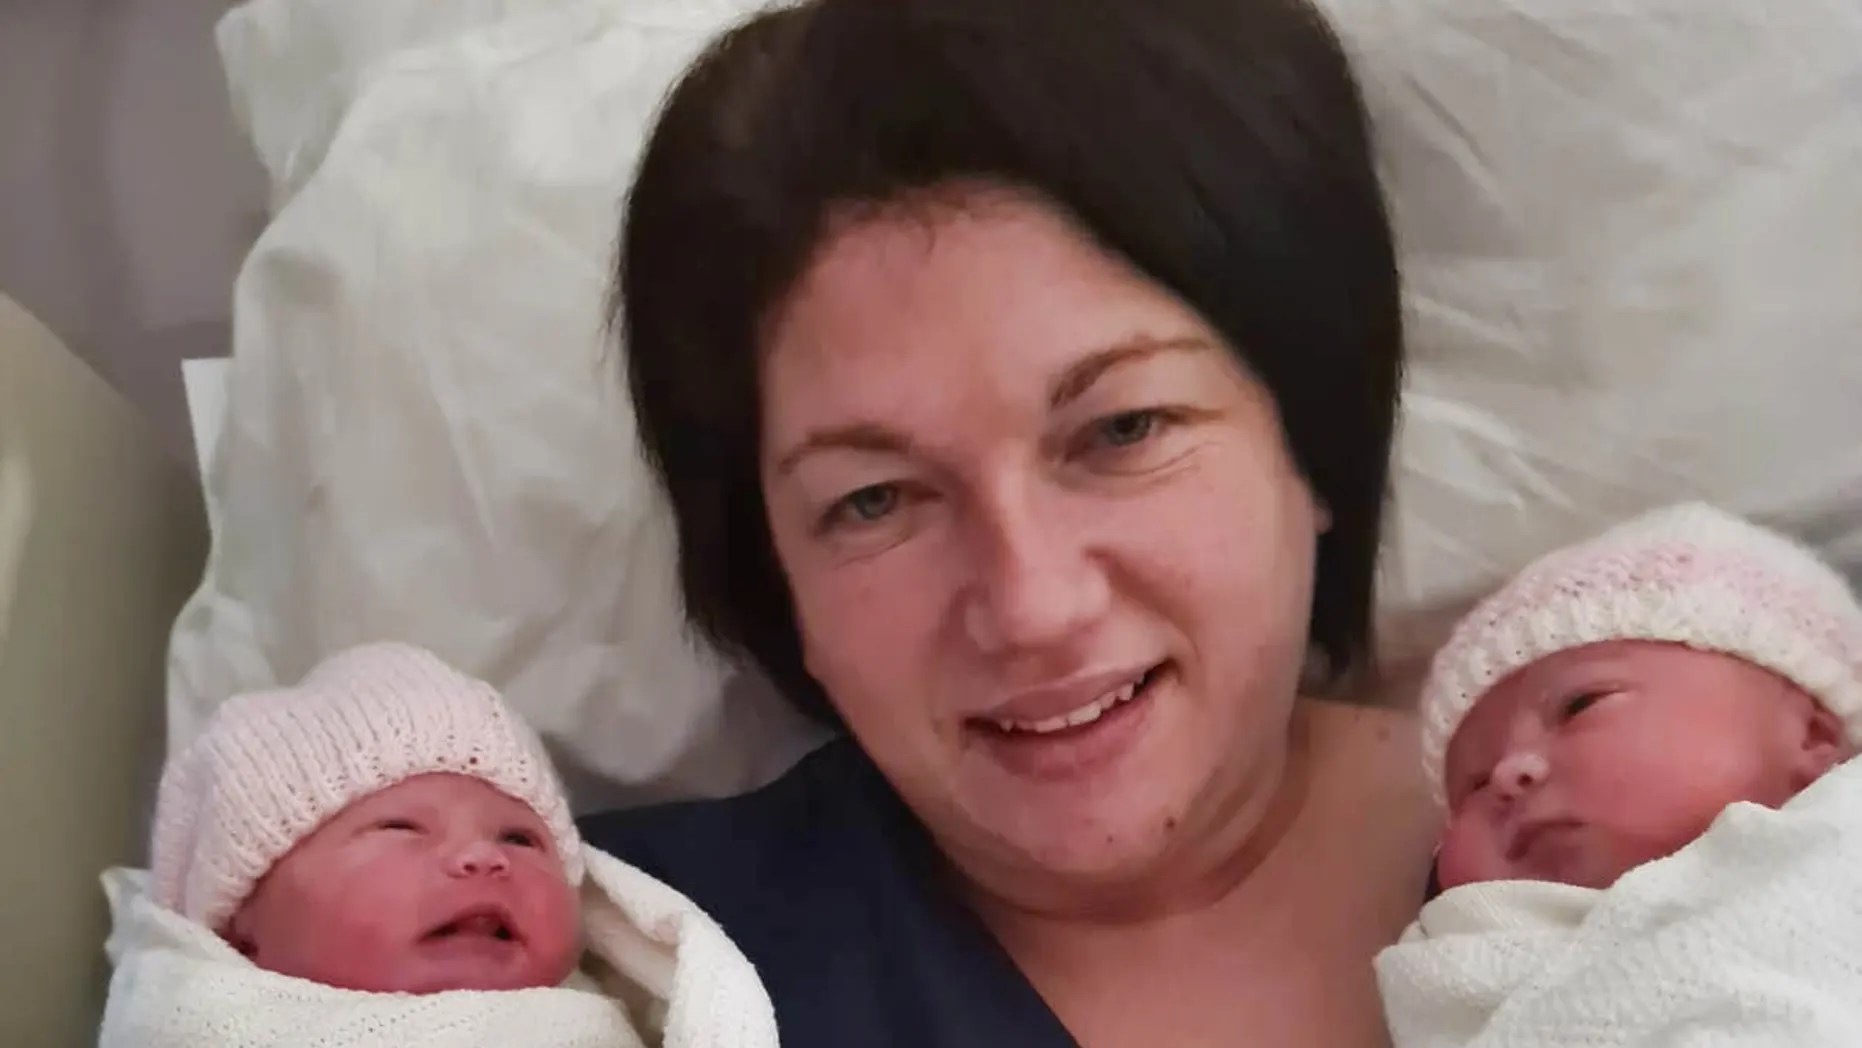 Coronavirus Put Pregnant Mom in Coma, But She Recovered and Birthed Healthy Twin Babies